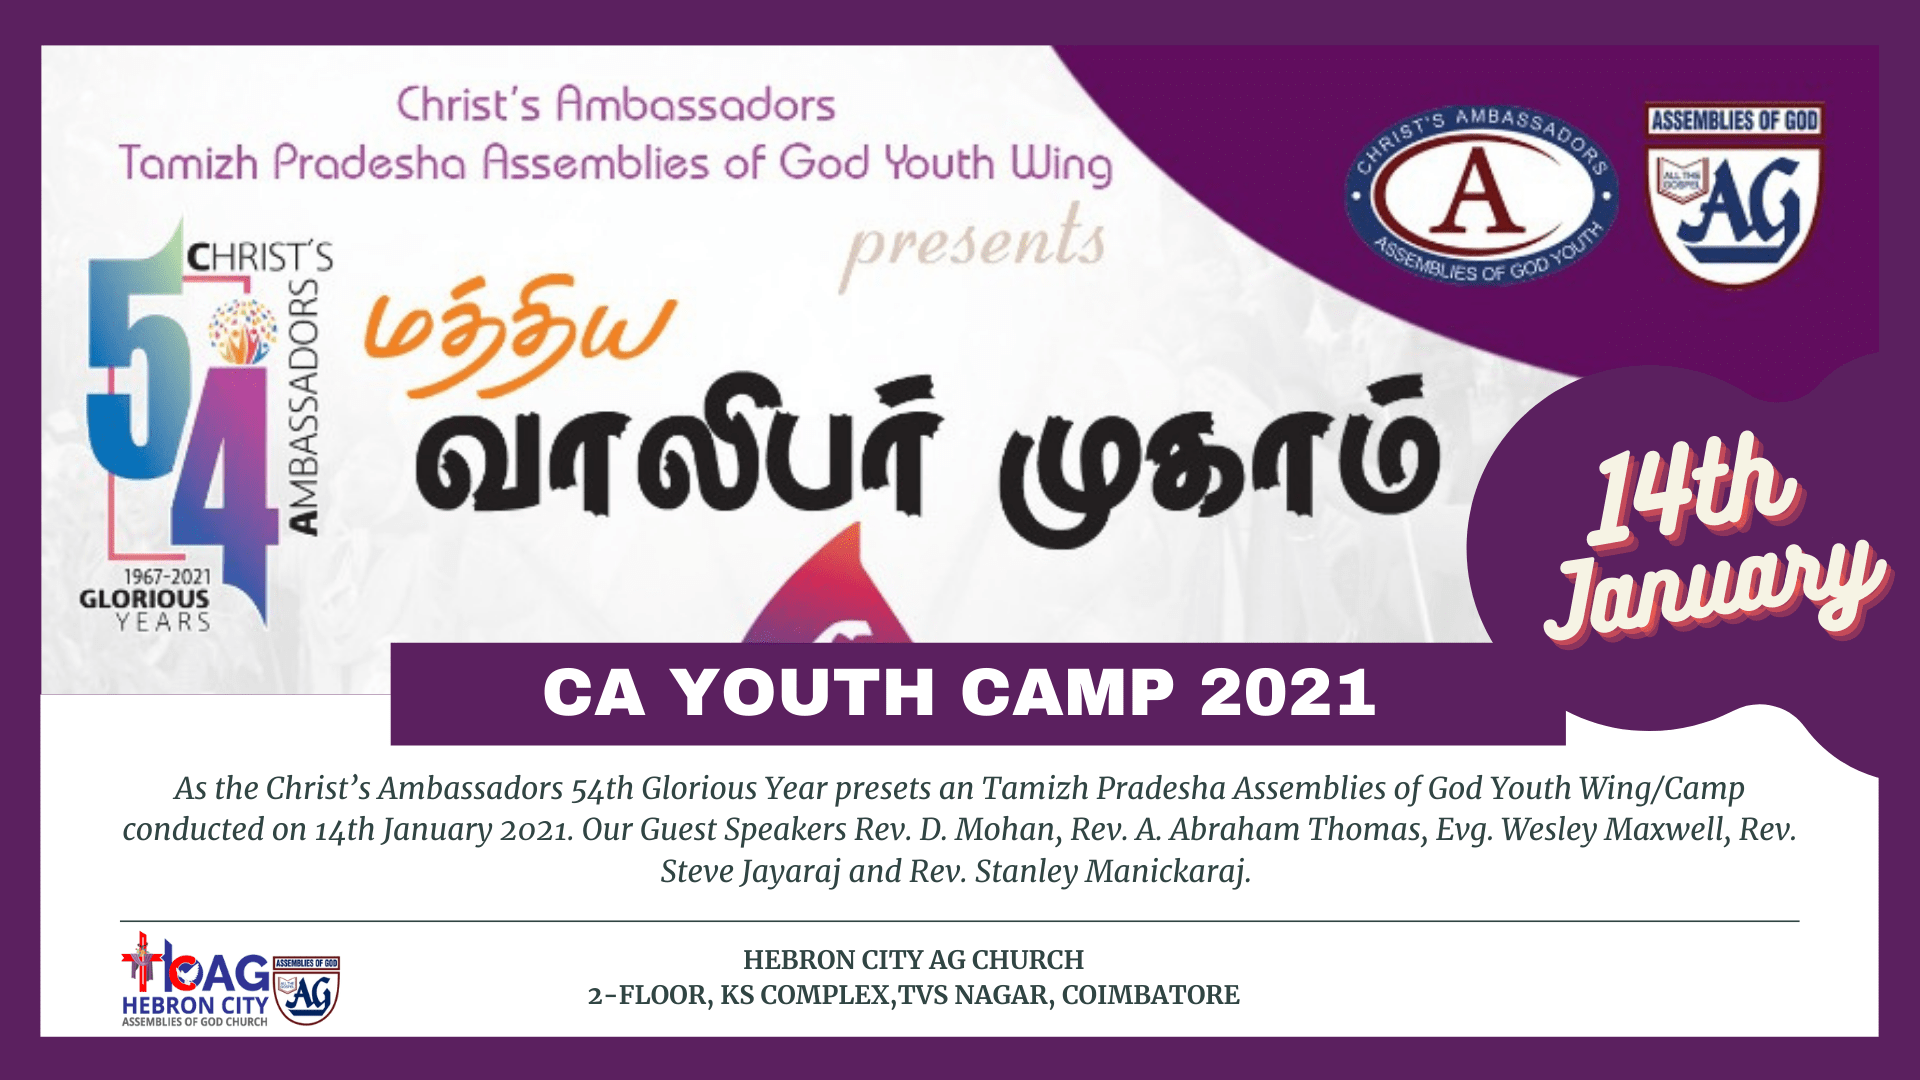 Christ's Ambassadors 54th Glorious Year presets an Tamizh Pradesha Assemblies of God Youth Wing/Camp conducted on 14th January 2021